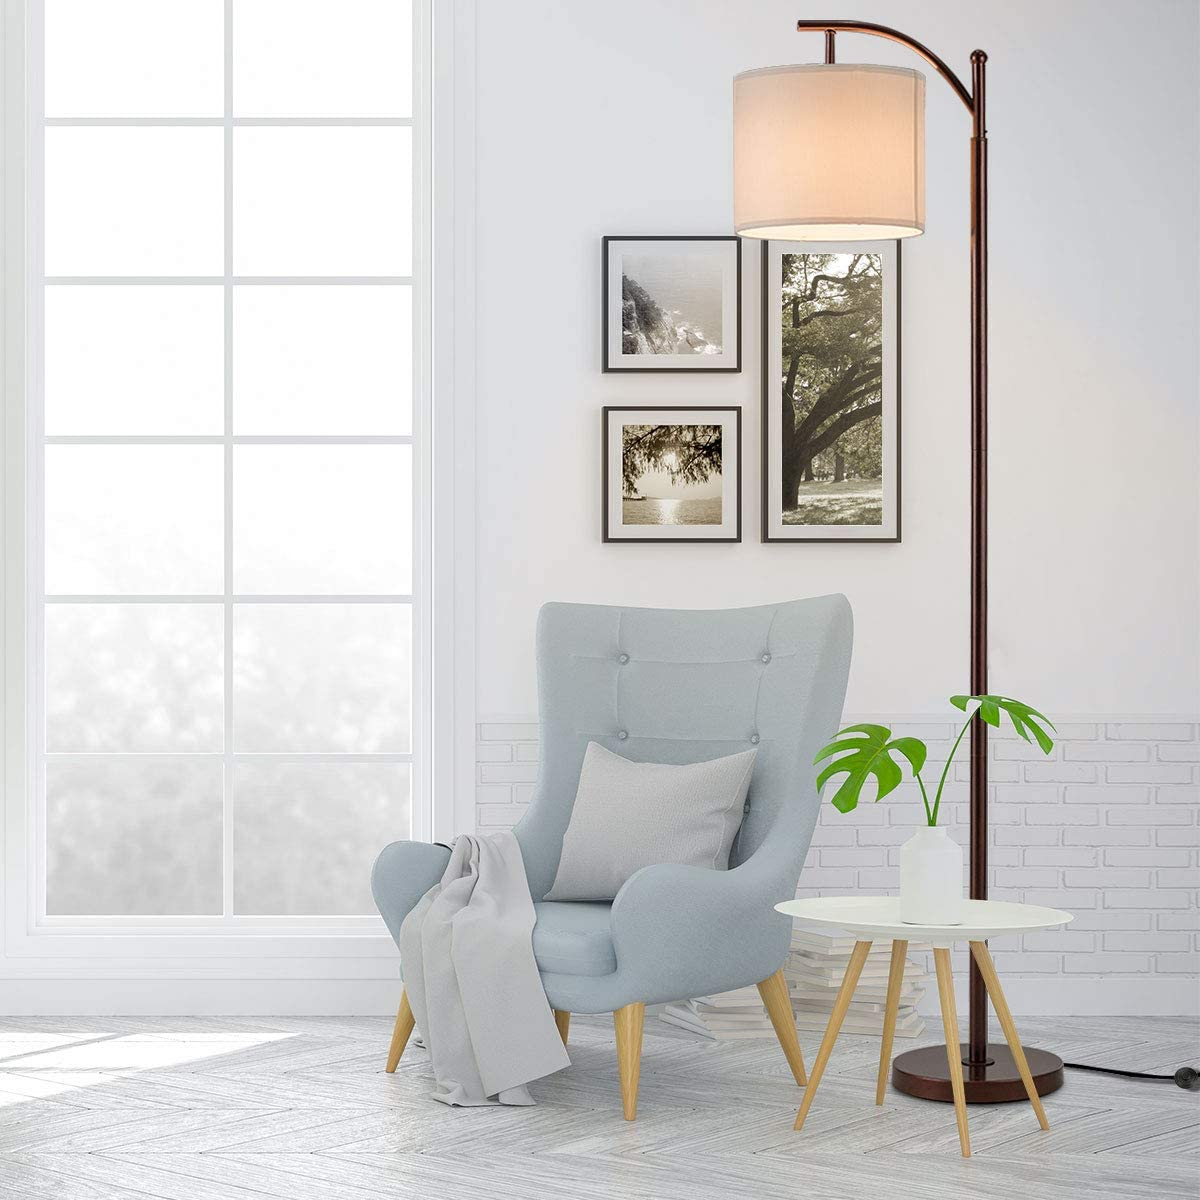 Tangkula Floor Lamp, Classic Standing Industrial Arc Light with Hanging Lamp Shade, Tall Pole Uplight with E26 Lamp Holder, Modern Floor Lamp for Bedroom Office Study Room Living Room Red Copper